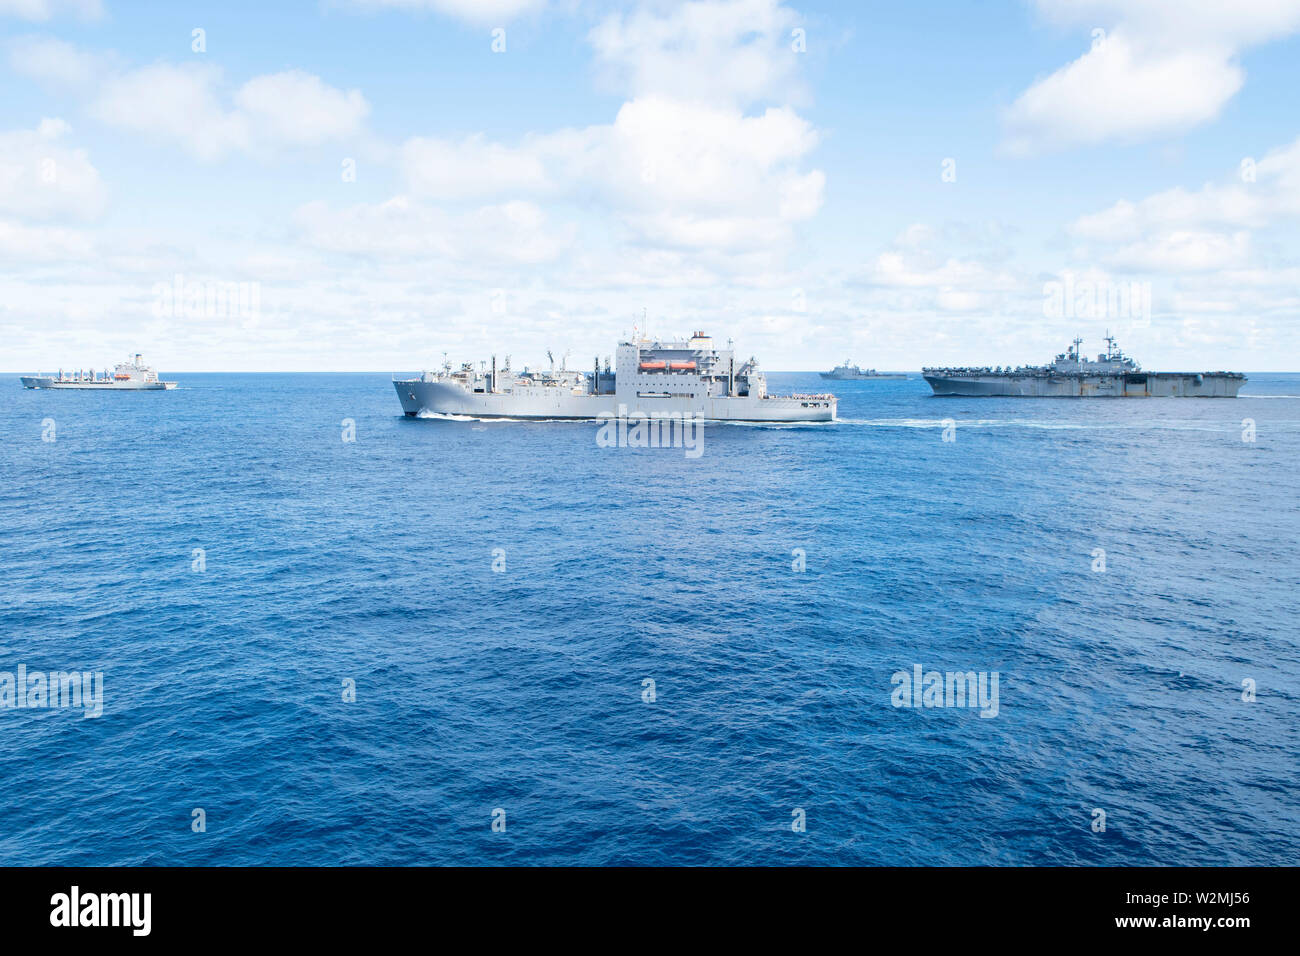 190709-N-DX072-1228 TASMAN SEA (July 9, 2019) The Military Sealift Command fleet replenishment oiler USNS Rappahannock (T-AO 204), the dry cargo and ammunition ship USNS Richard E. Byrd (T-AKE 4), the amphibious dock landing ship USS Ashland (LSD 48), and the amphibious assault ship USS Wasp (LHD 1) transit together during a replenishment-at-sea. Wasp, flagship, Green Bay and Ashland, part of the Wasp Amphibious Ready Group, with embarked 31st Marine Expeditionary Unit, is currently participating in Talisman Sabre 2019 off the coast of Northern Australia.  A bilateral, biennial event, Talisman - Stock Image